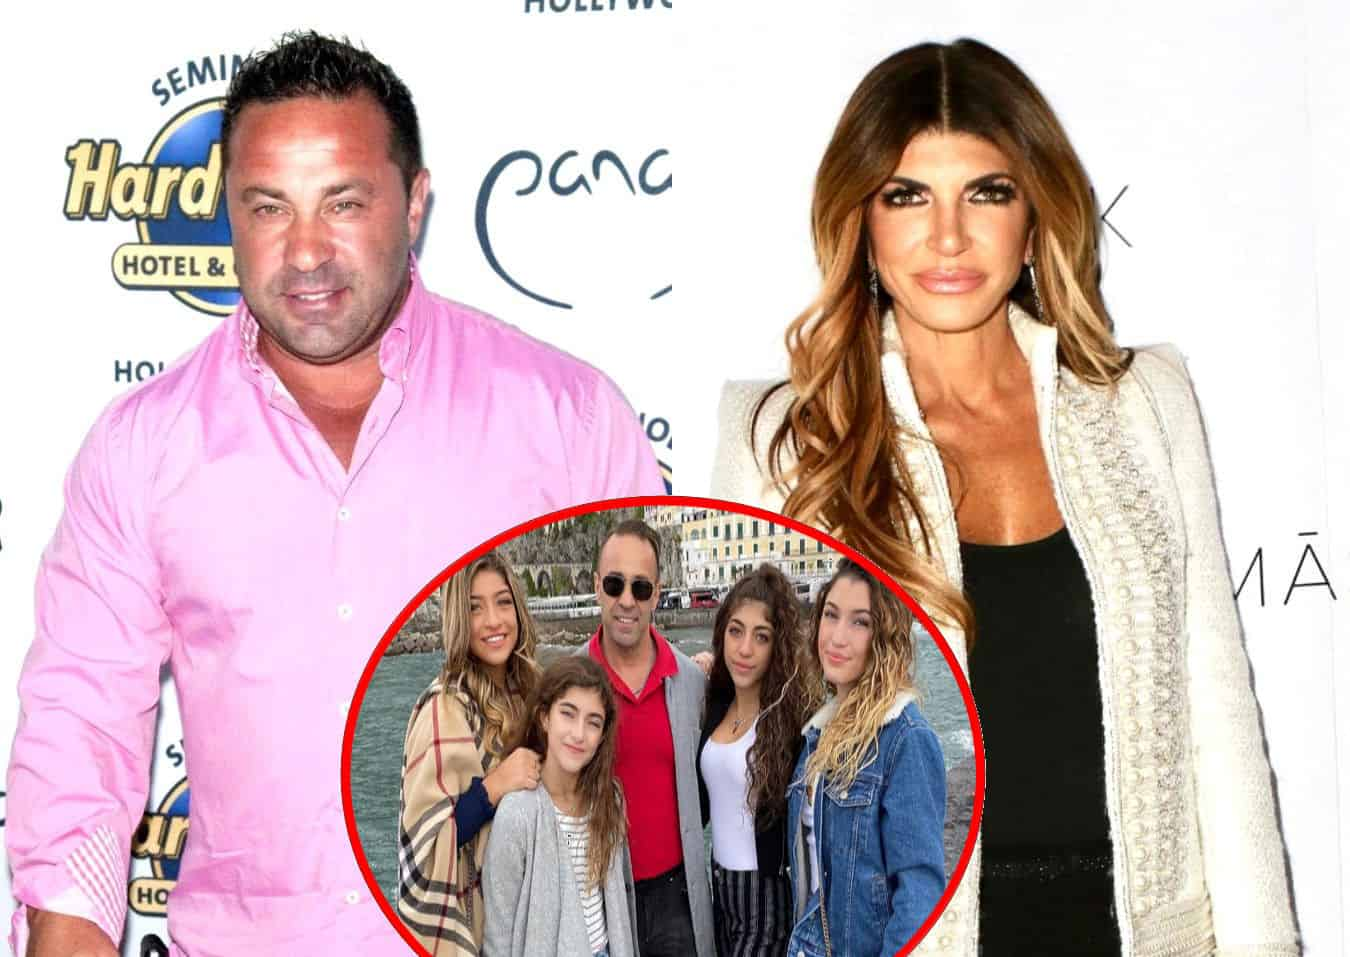 PHOTO: RHONJ's Joe Giudice Honors Daughters With New Chest Tattoo as Gia Teases Her Own, Plus He Responds to Teresa's Reunion Look With Flirty Comment